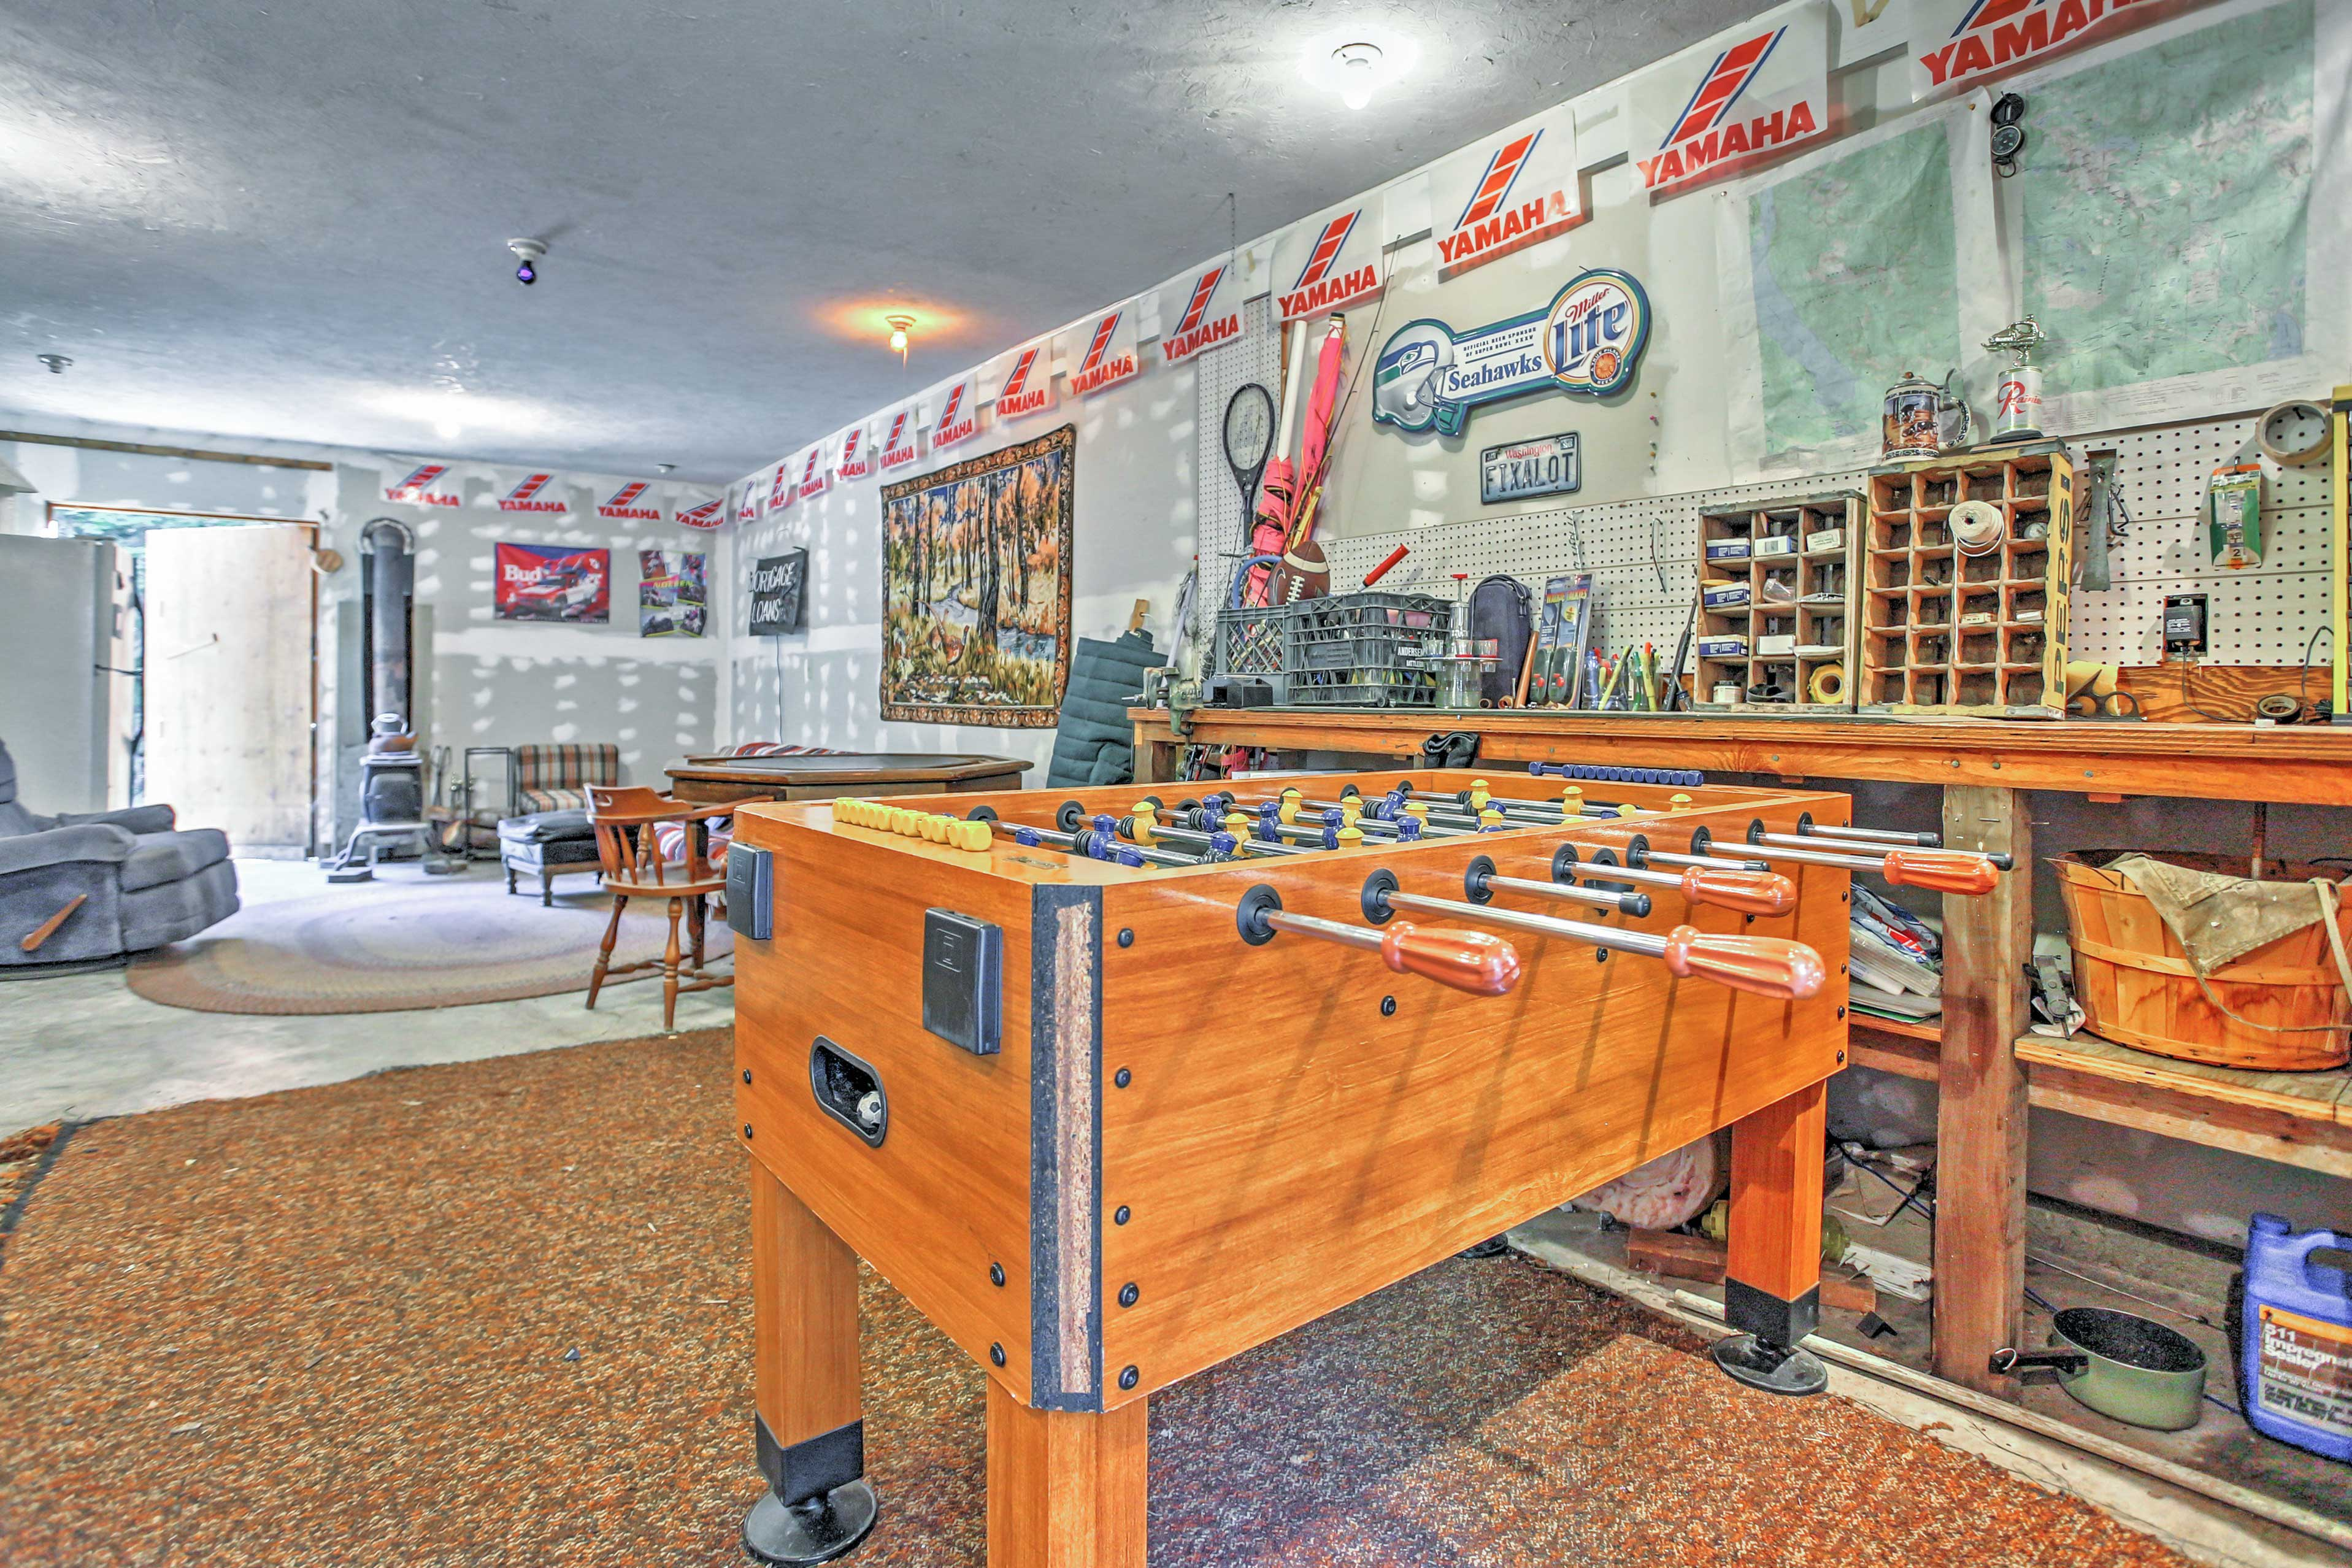 Challenge your pals to a game of foosball in the gaming area!